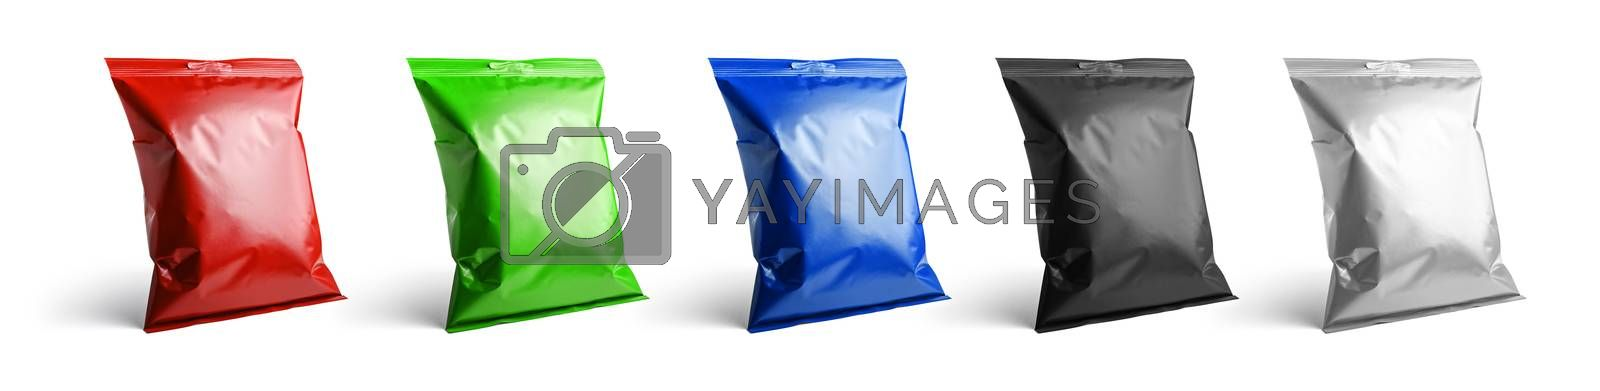 A set of packages in different colors for your design.